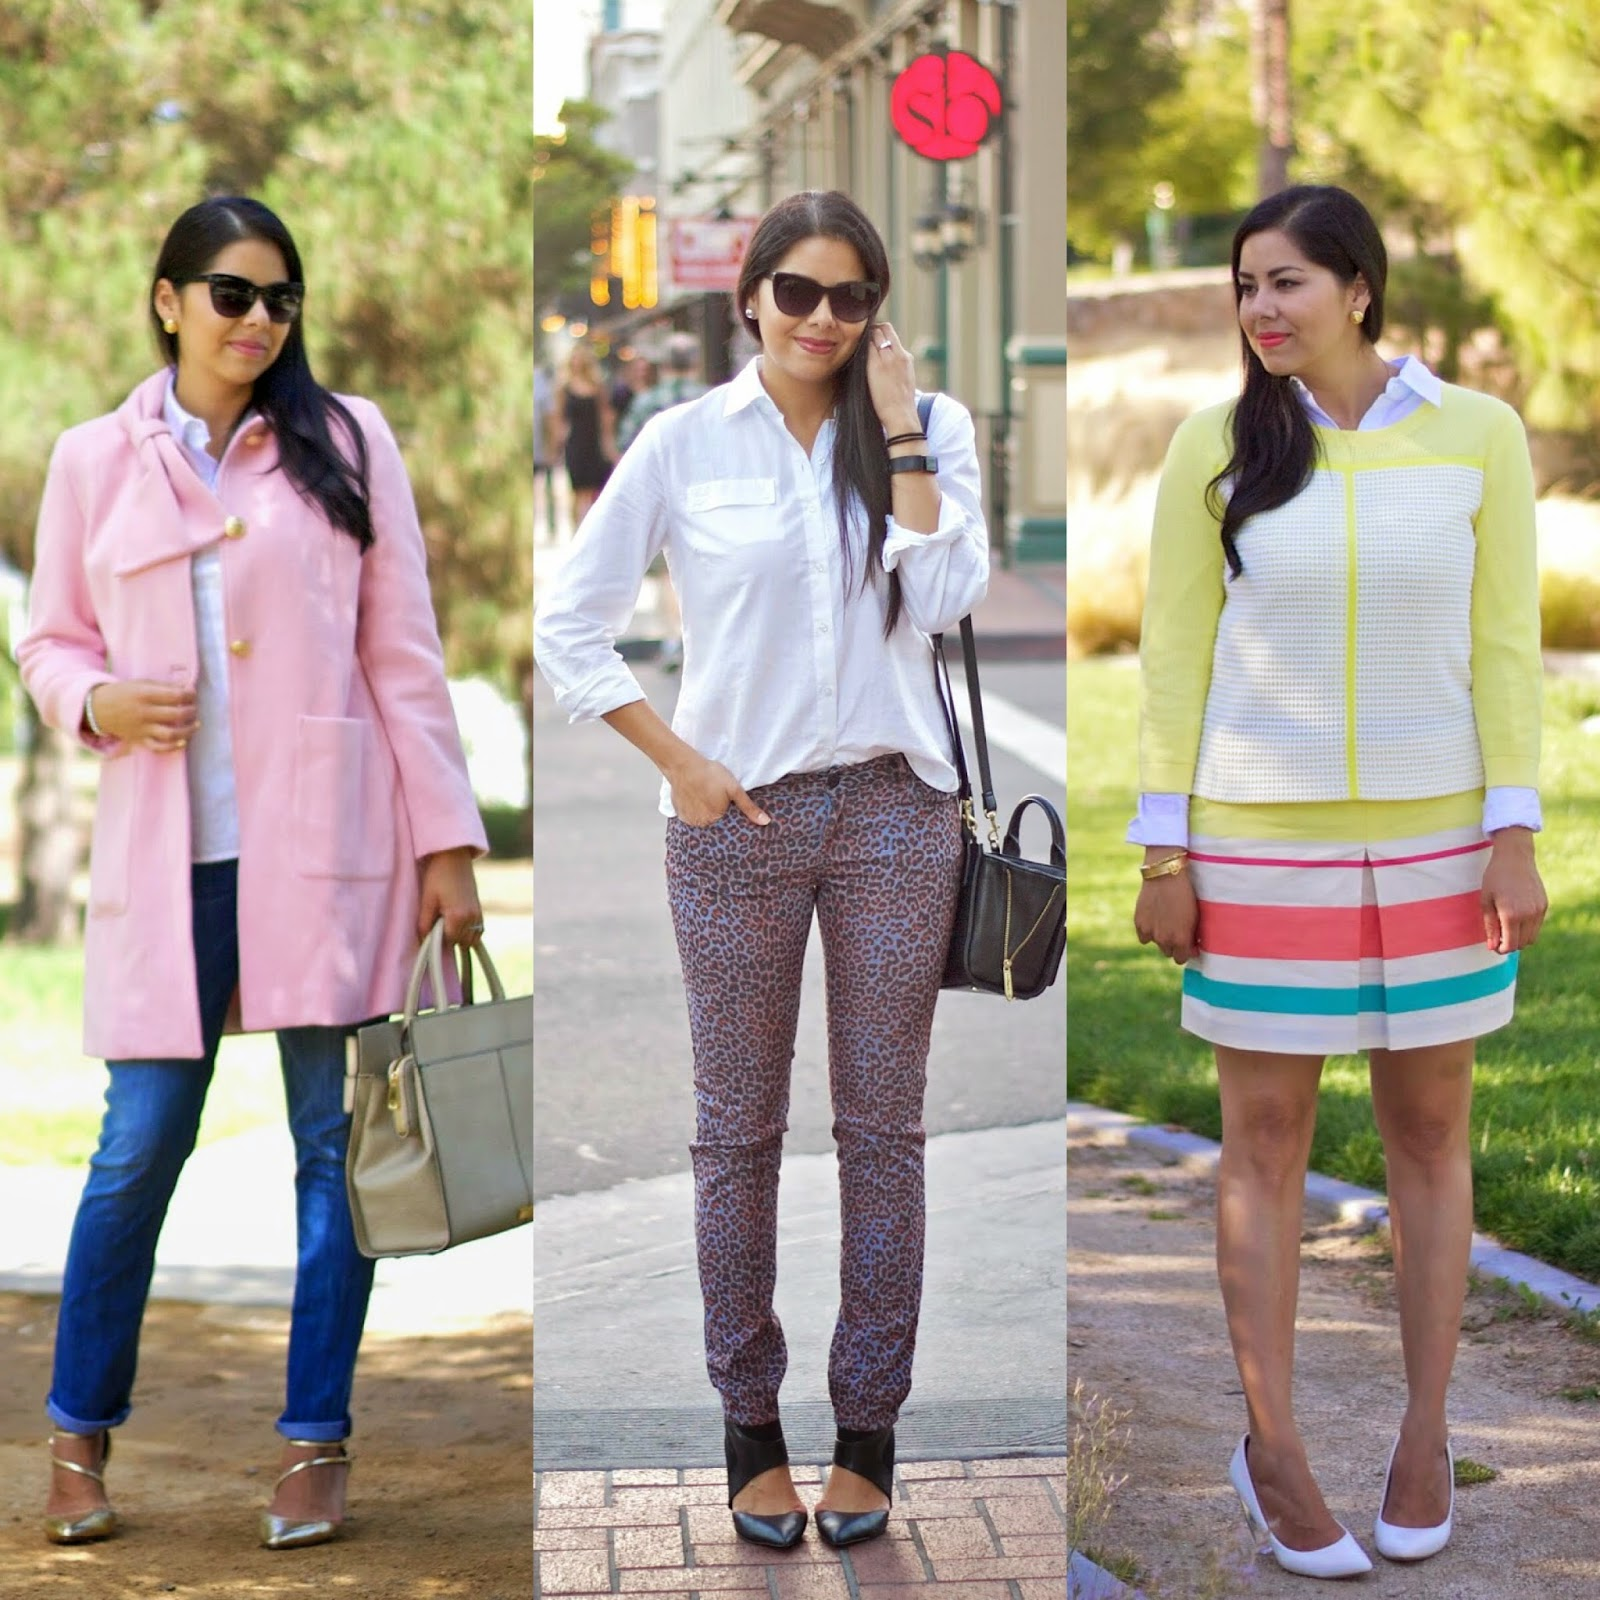 3 ways to wear a white button up, white button up, San Diego style blogger, san diego fashion blogger, I blog in san diego, i love san diego, pink tuscadero coat from CAbi, printed jeans, how to layer a sweater, latina fashion blogger